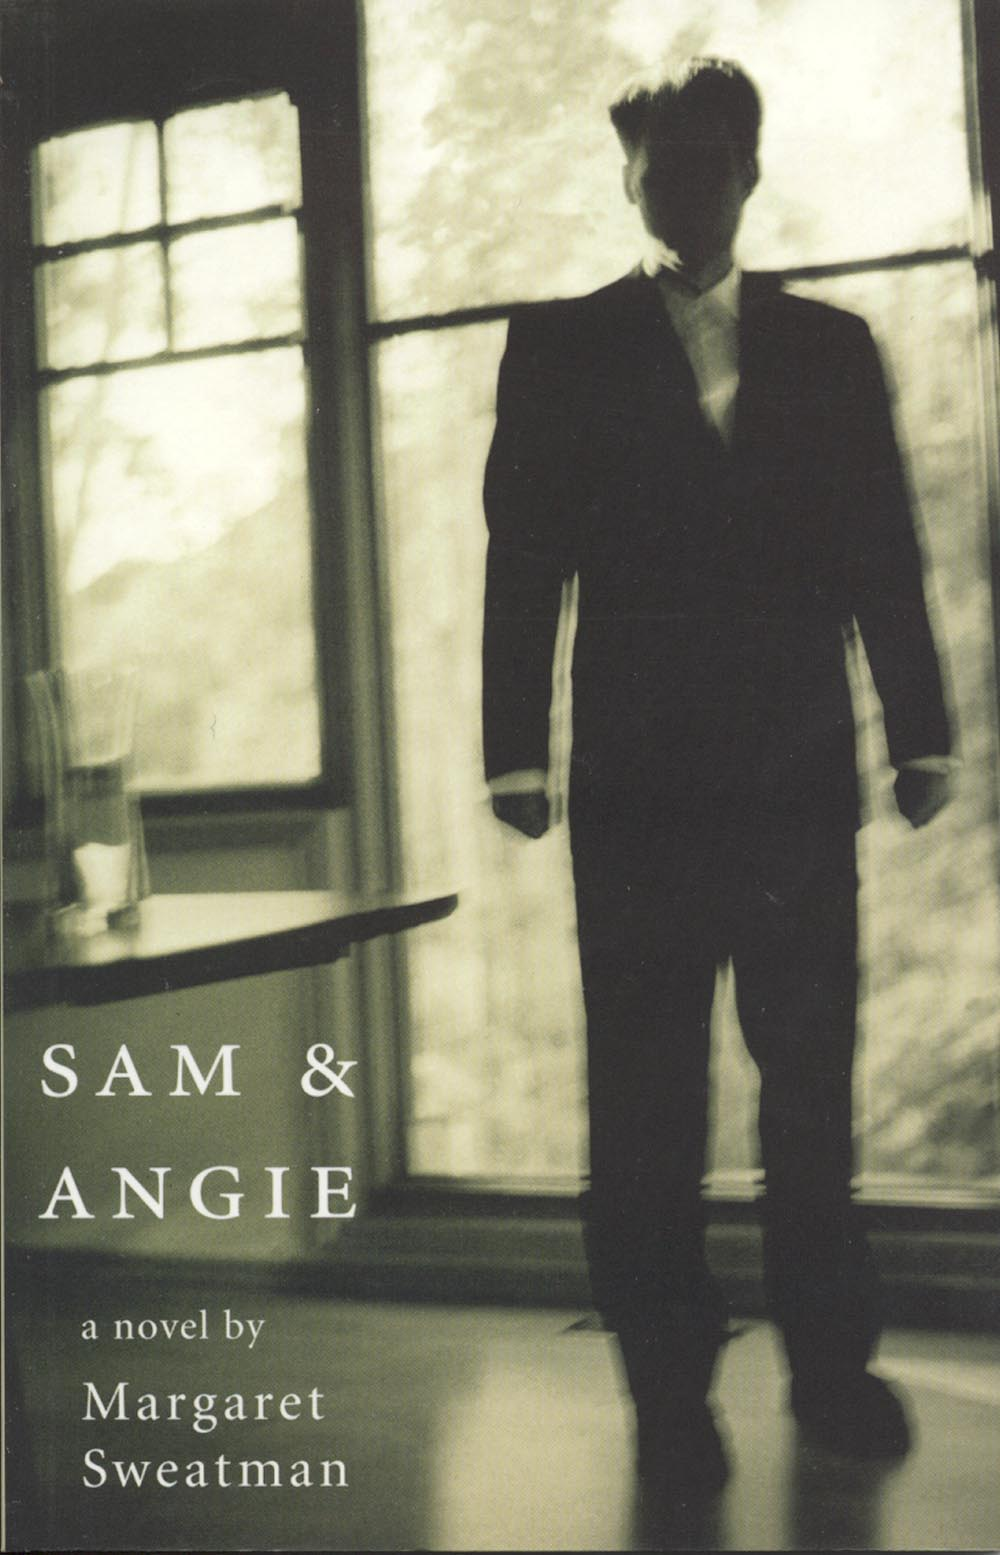 Sam & Angie by Margaret Sweatman